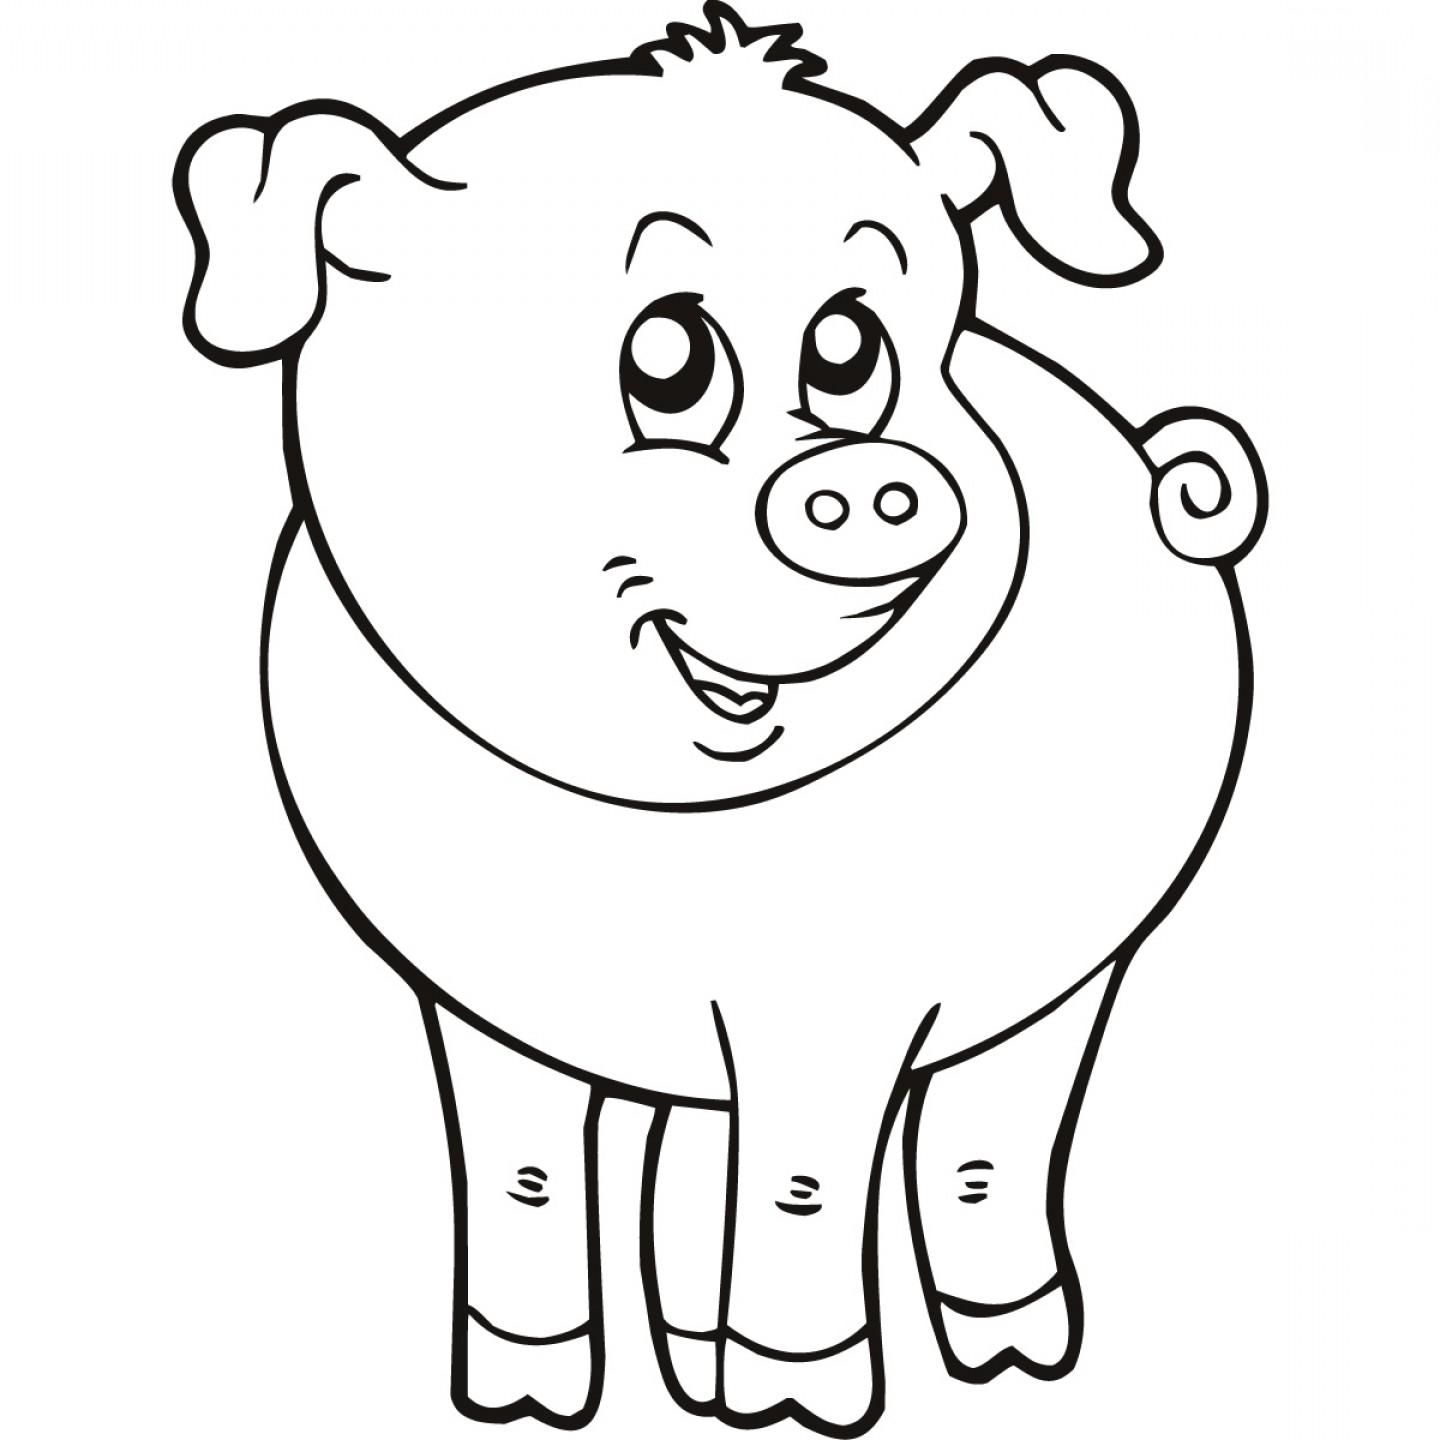 Black And White Line Drawings Of Animals : Hd animal line art design clipart best